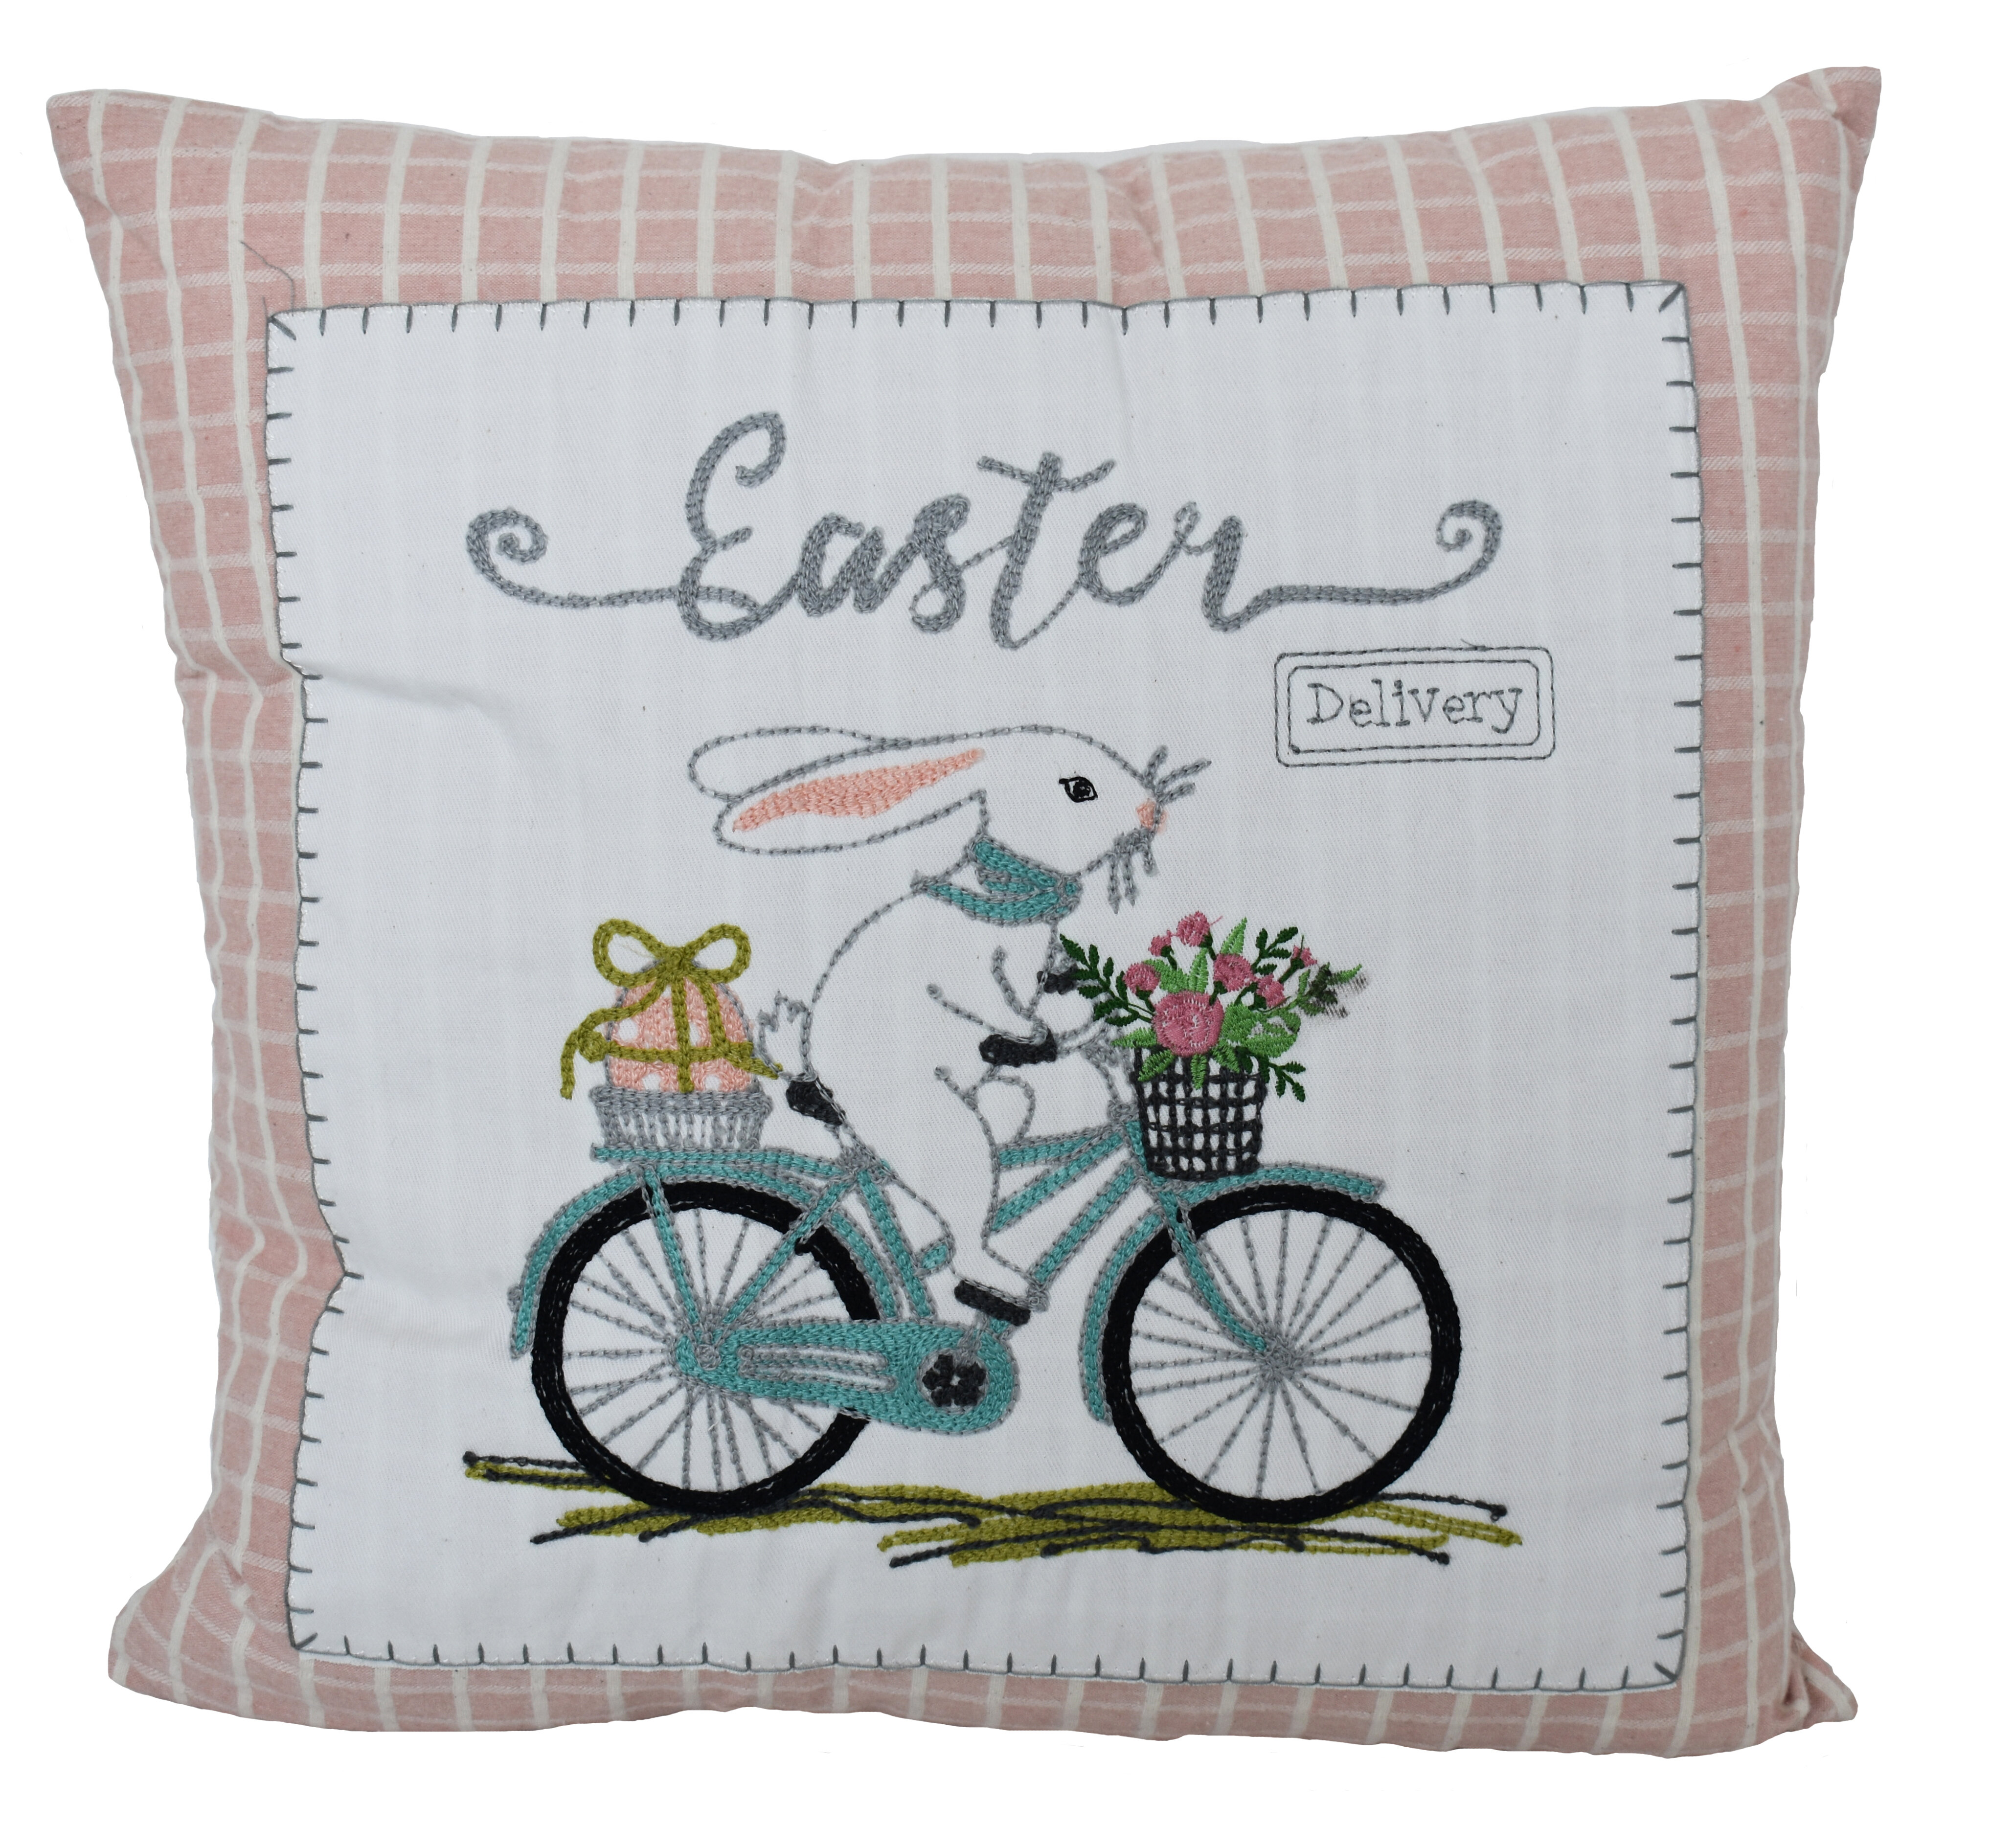 The Holiday Aisle Wier Easter Bicycle Cotton Throw Pillow Insert Wayfair